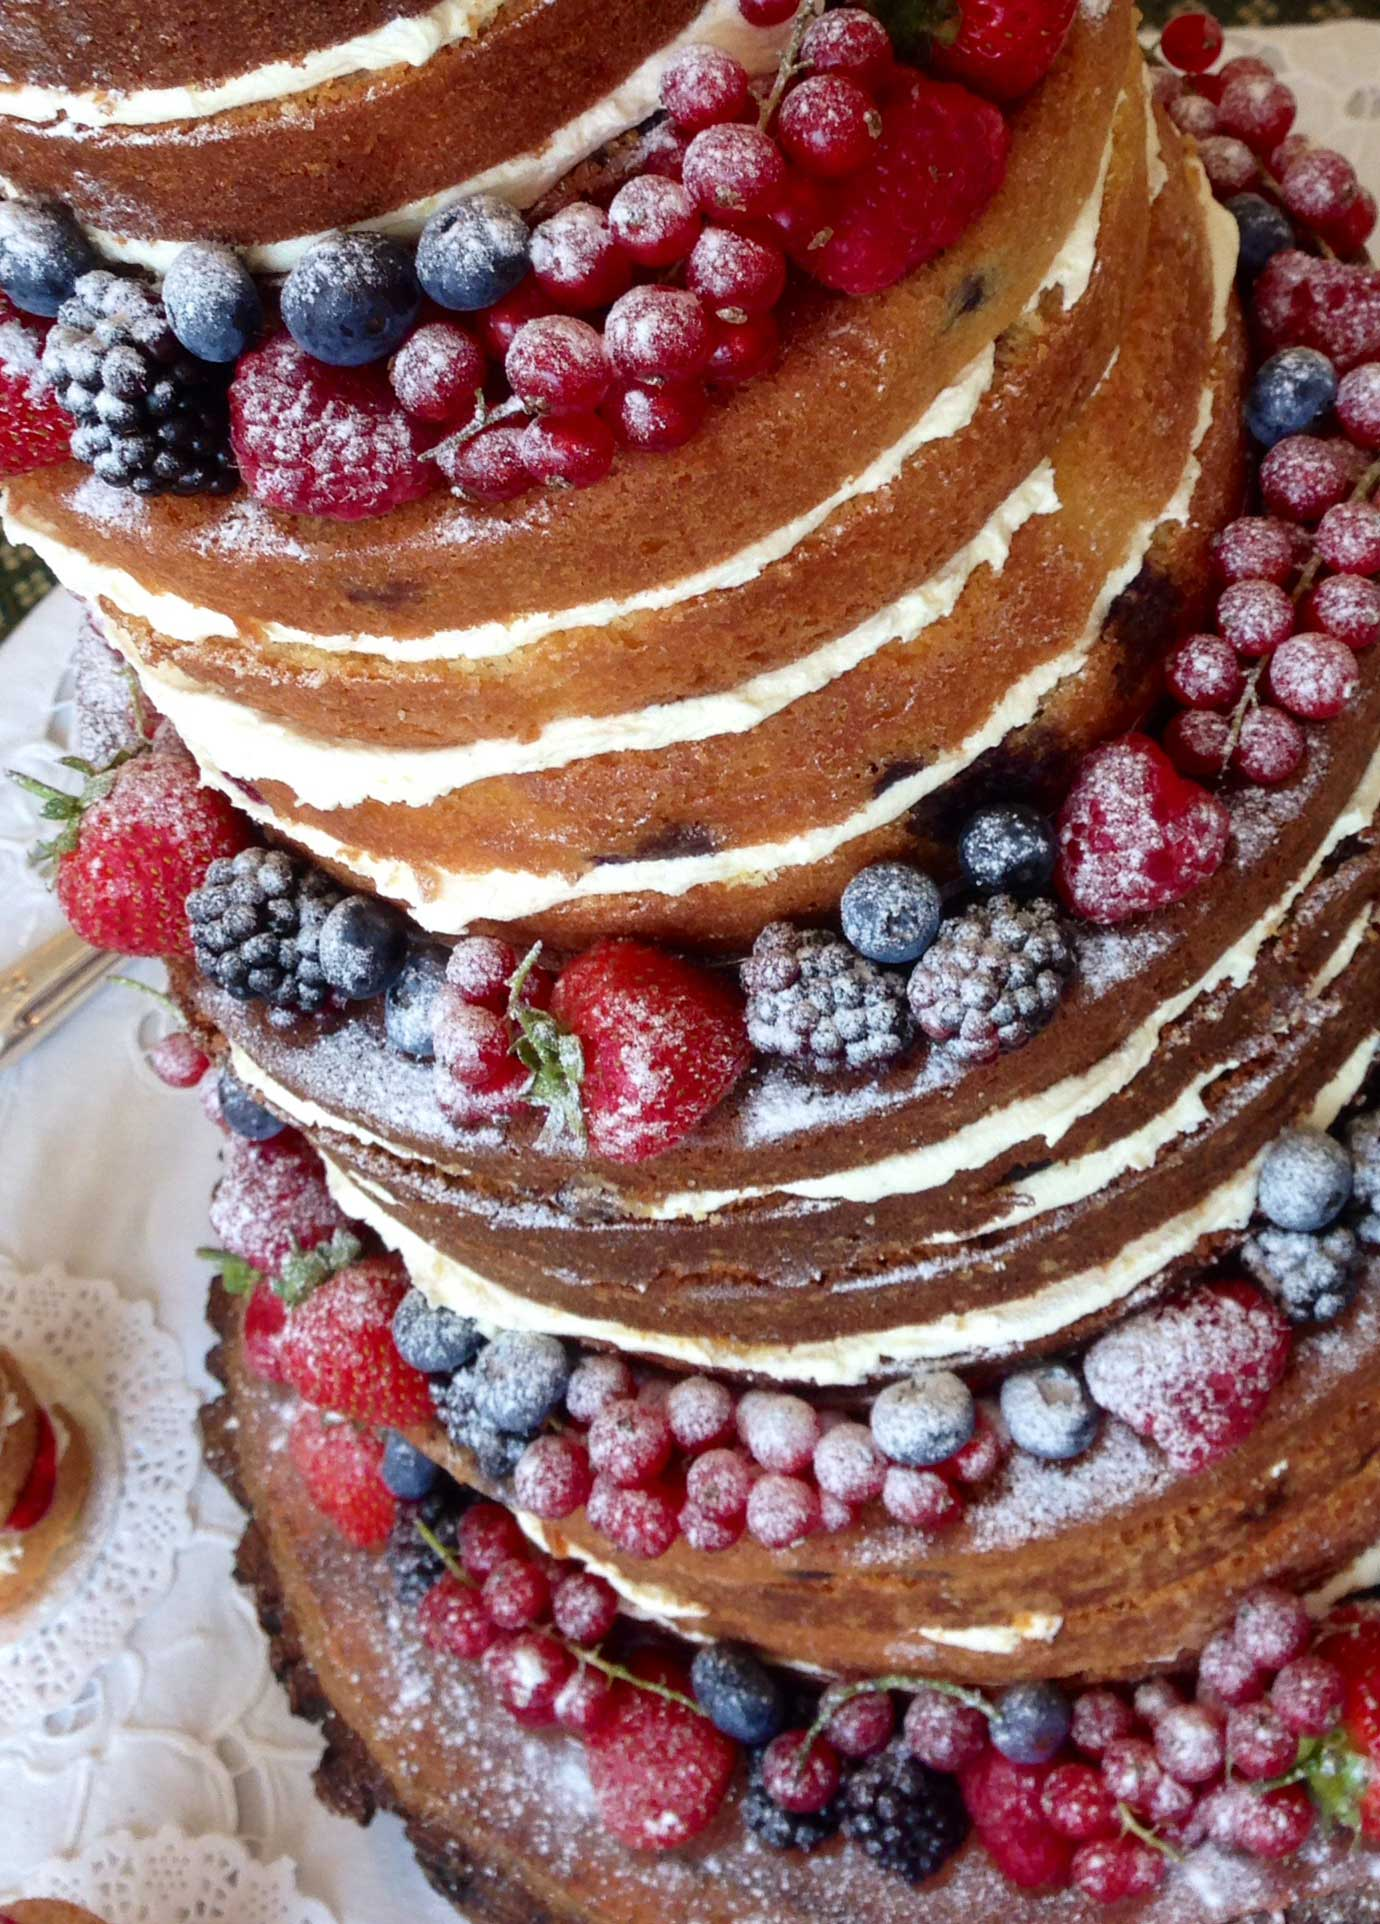 Naked Wedding Cake at The Lawn, Rochford, Sunday 30th August 2015